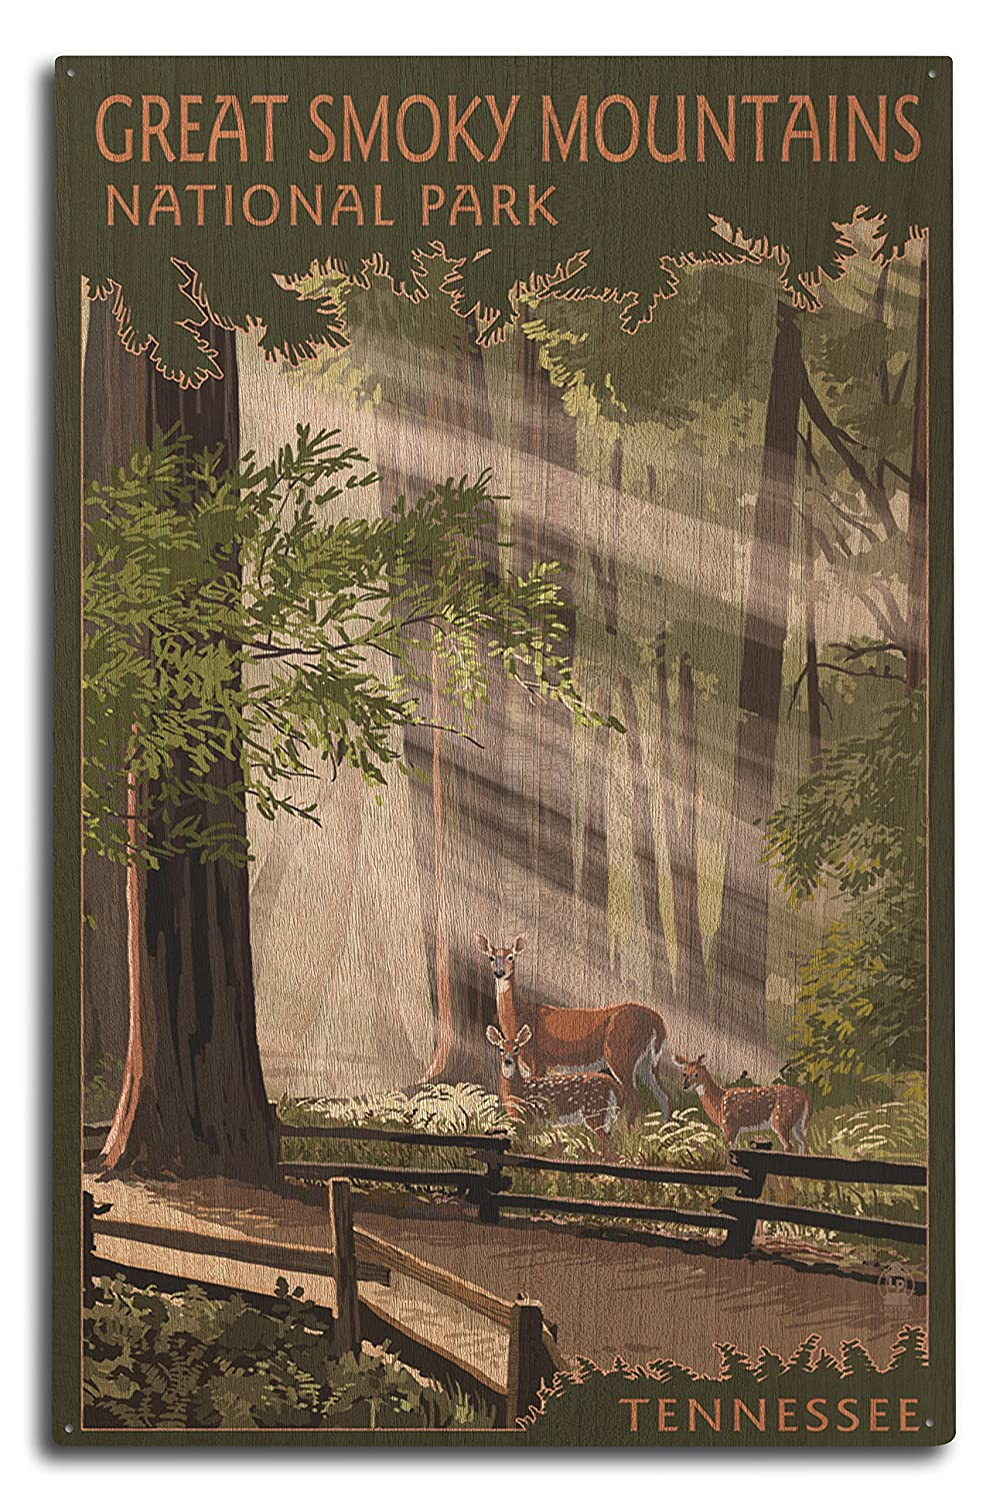 GREAT SMOKY MOUNTAINS、テネシー州 – Pathway In Trees 10 x 15 Wood Sign LANT-46535-10x15W 10 x 15 Wood Sign  B07367J6J3